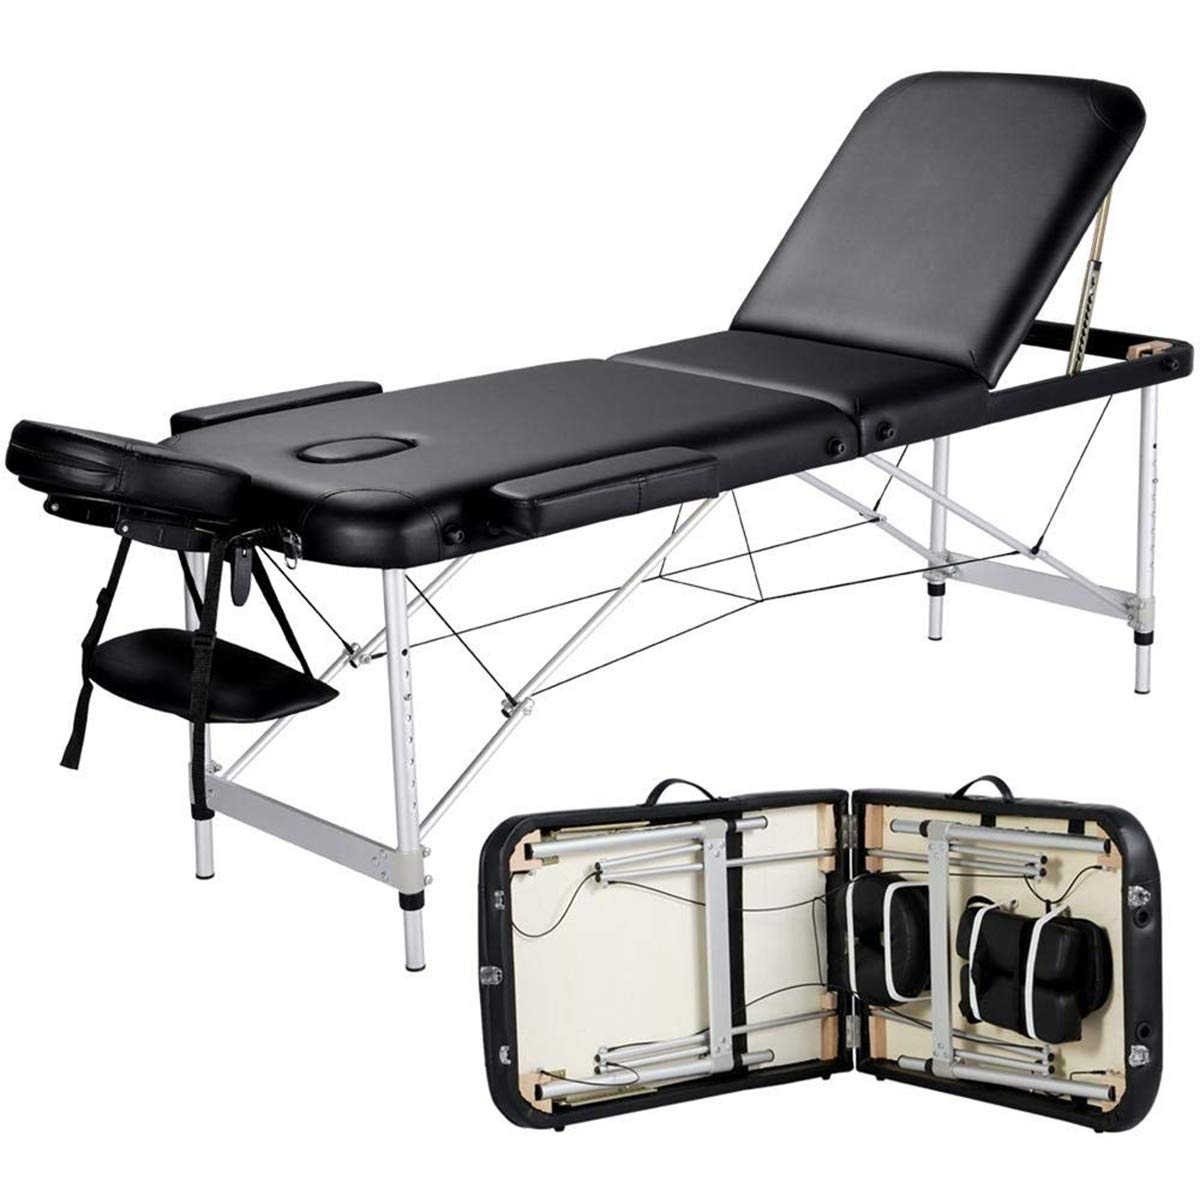 Massage Table Portable Massage Bed 3 Folding Aluminium Frame Height Adjustable Salon Spa Table with Carry Case by CYQAQ